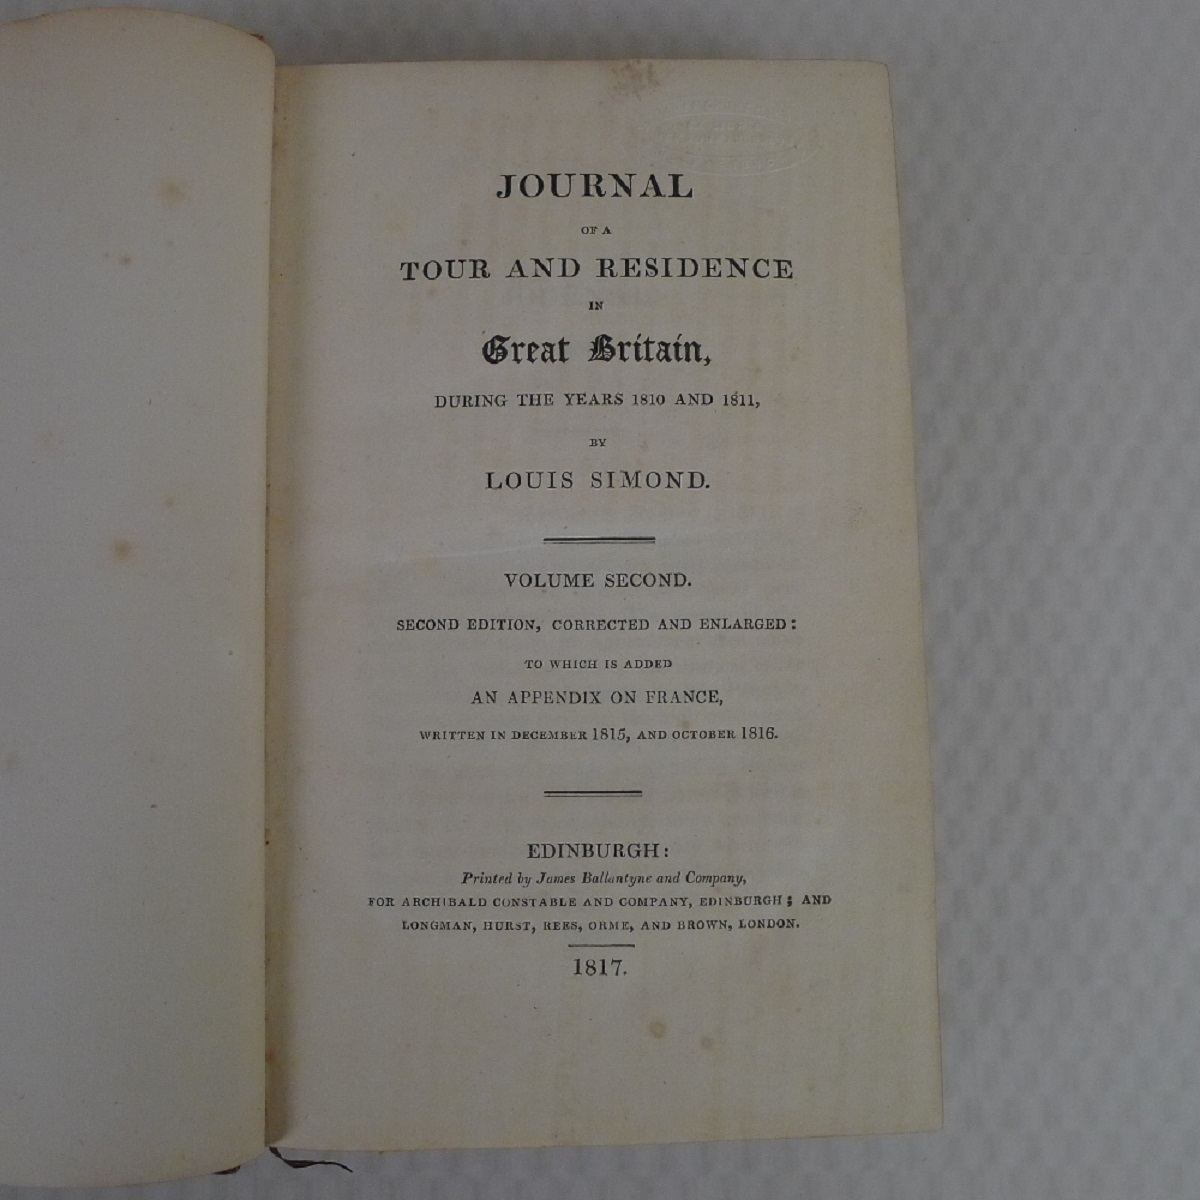 Simond's Travels in Great Britain Volumes I and II, Second Edition published in 1817, being a - Image 4 of 9